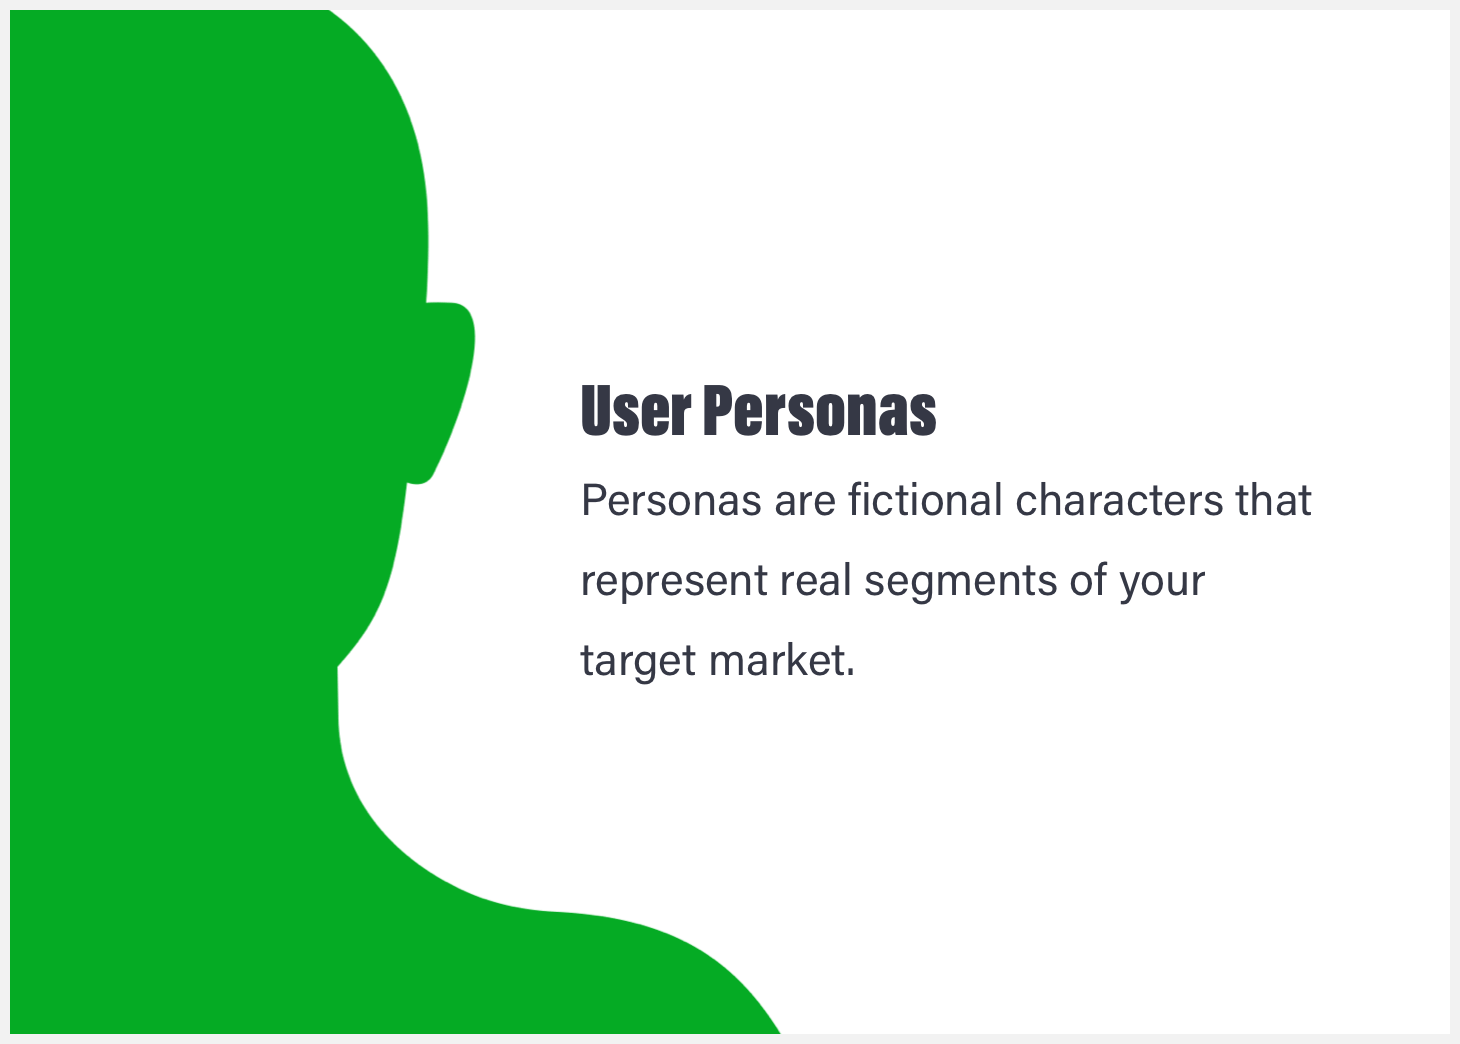 A silhouette with the definition of a user persona.